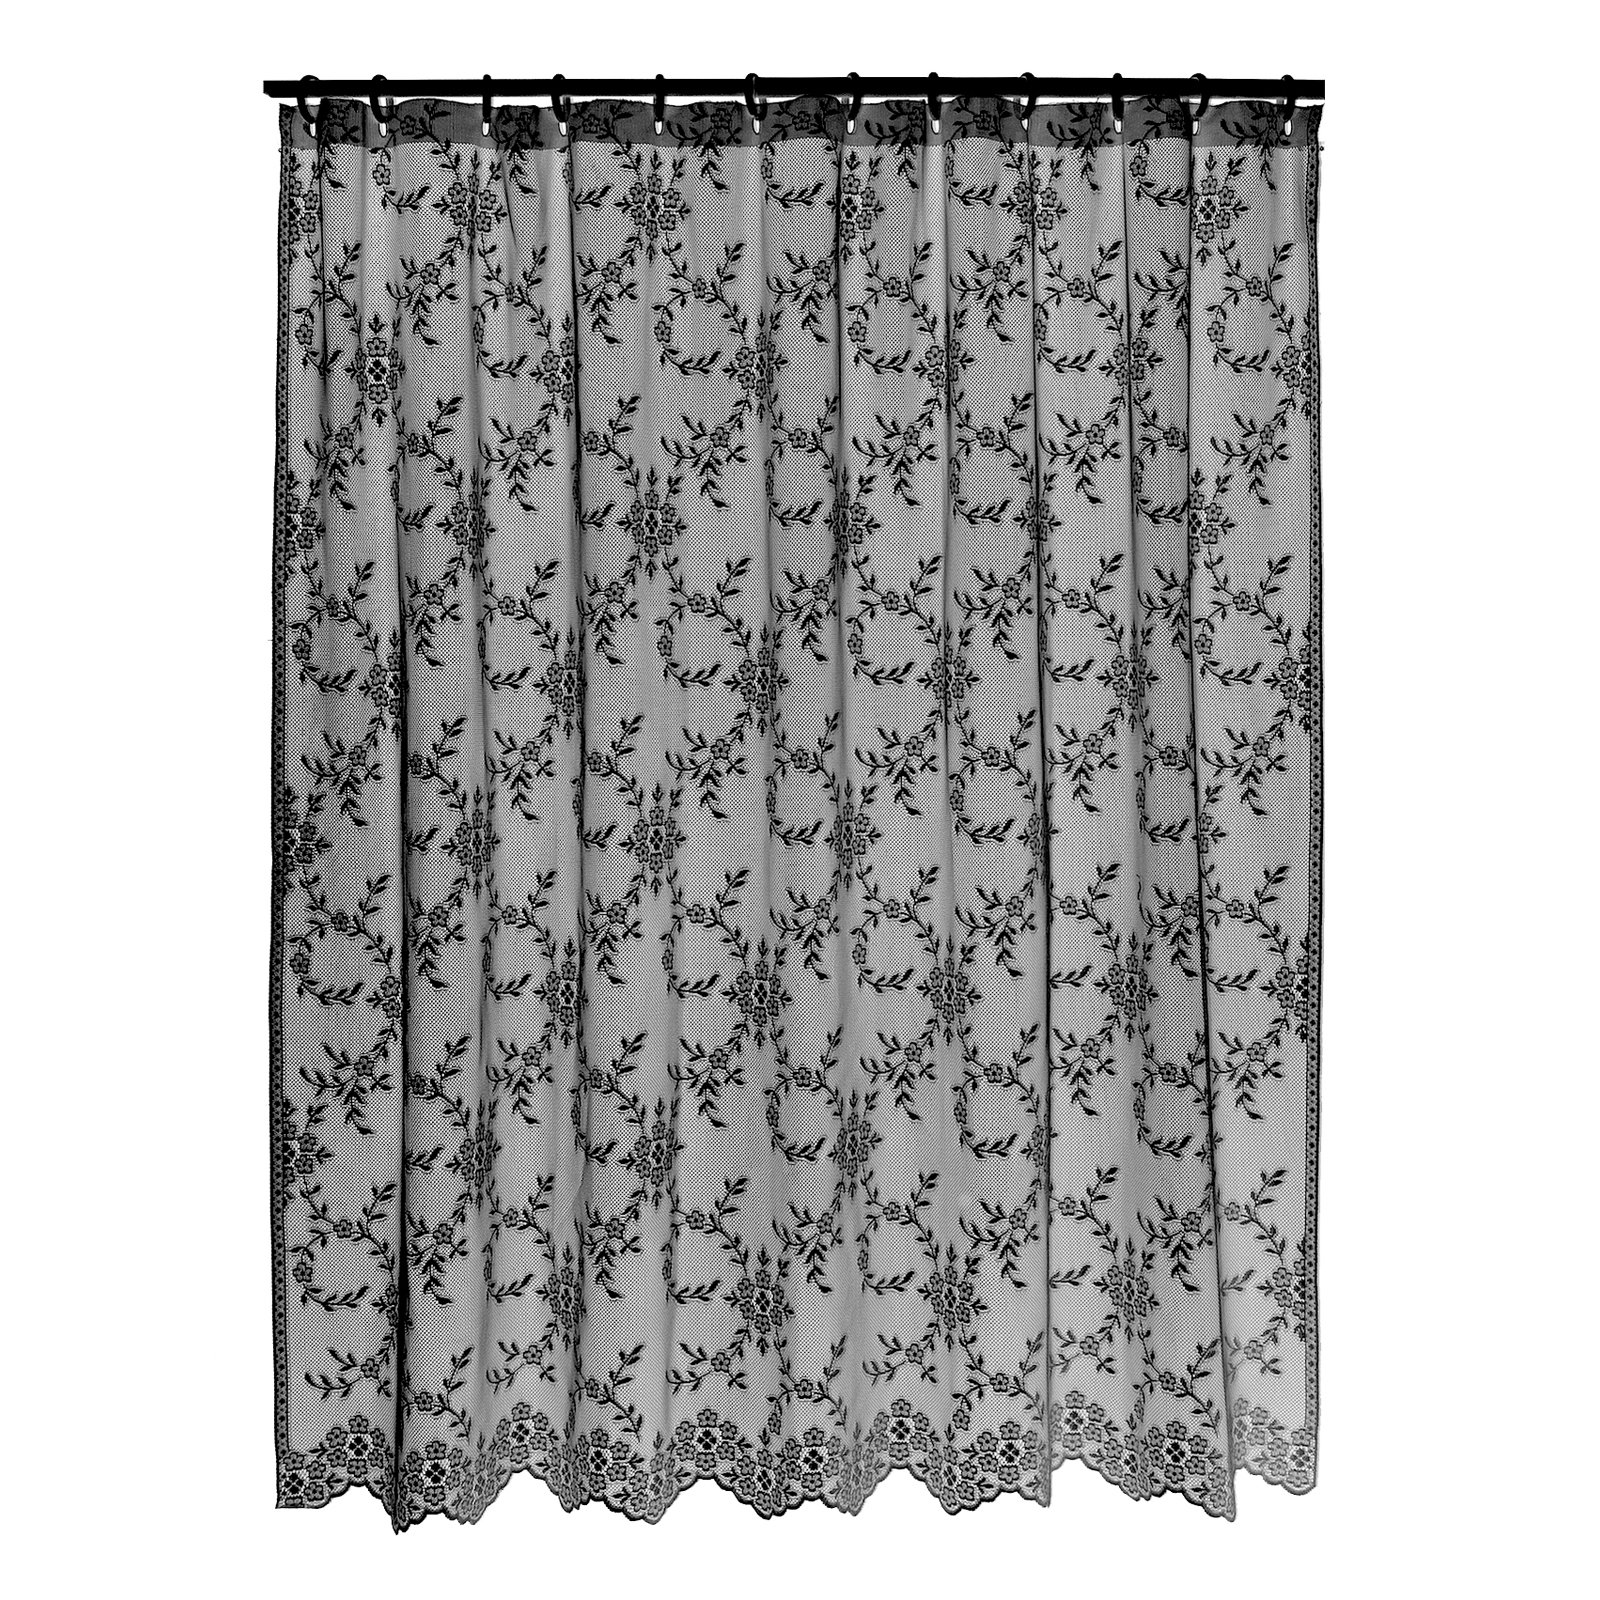 Downton Abbey By Heritage Lace Yorkshire Shower Curtain